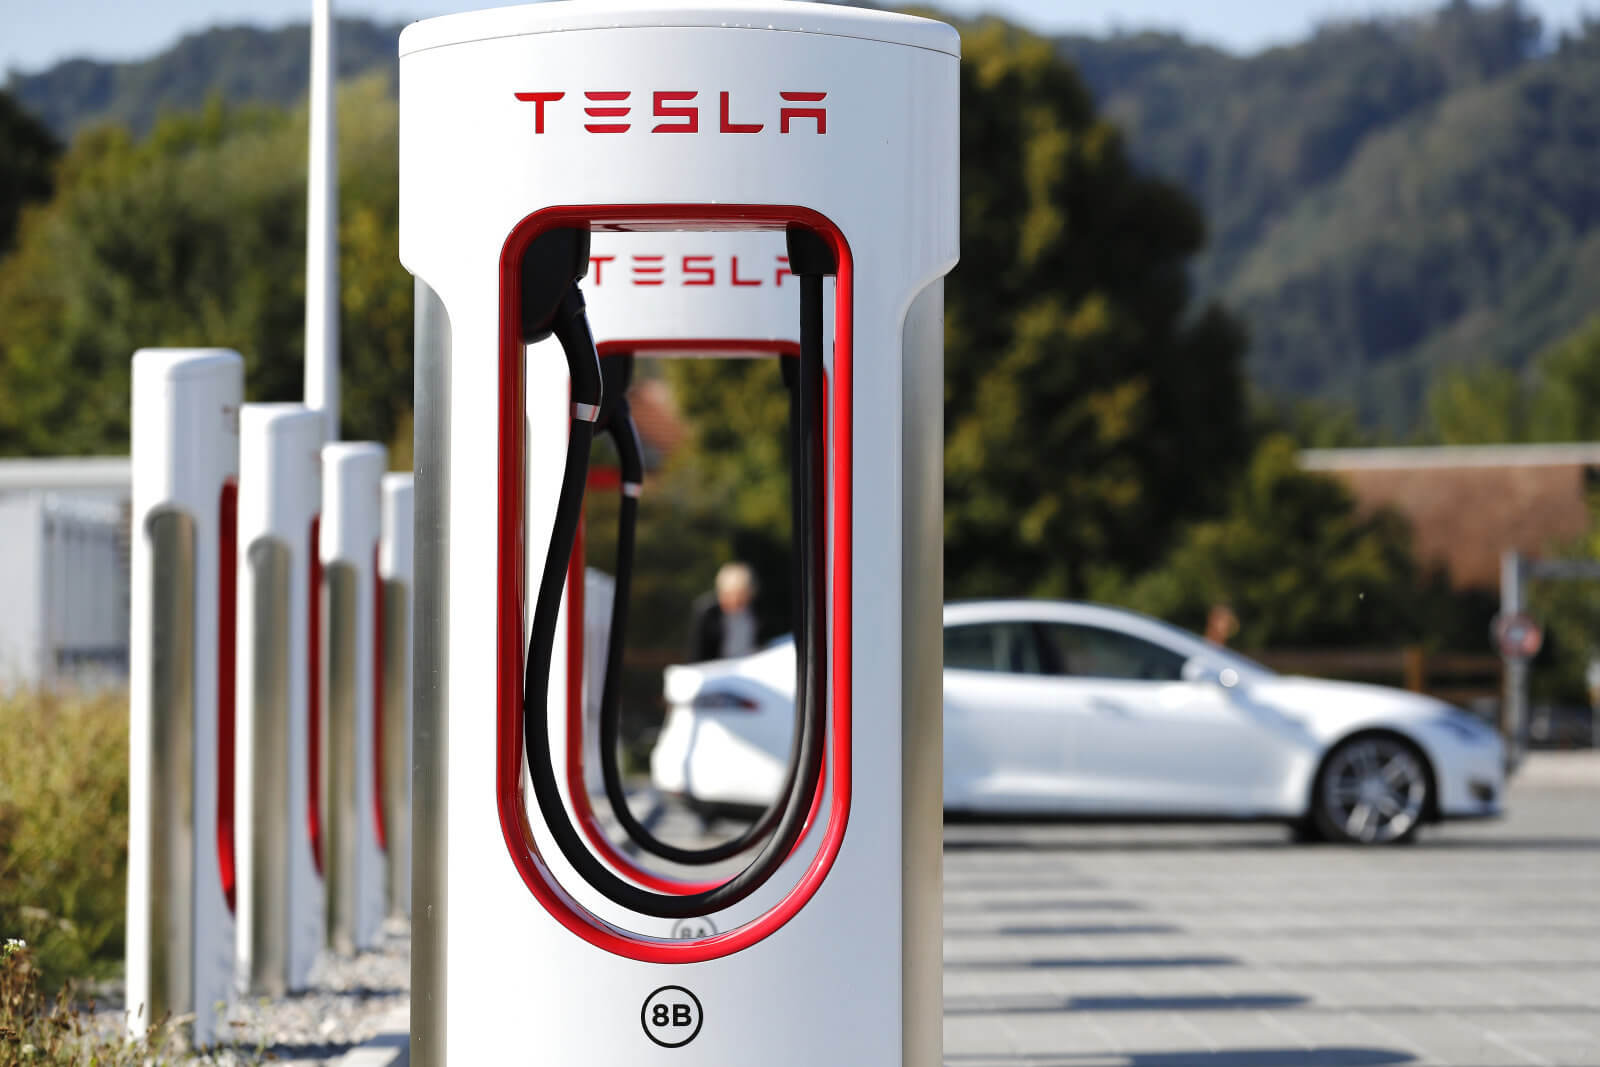 A new type of battery will enable electric cars to travel nearly 2,400 miles without recharging